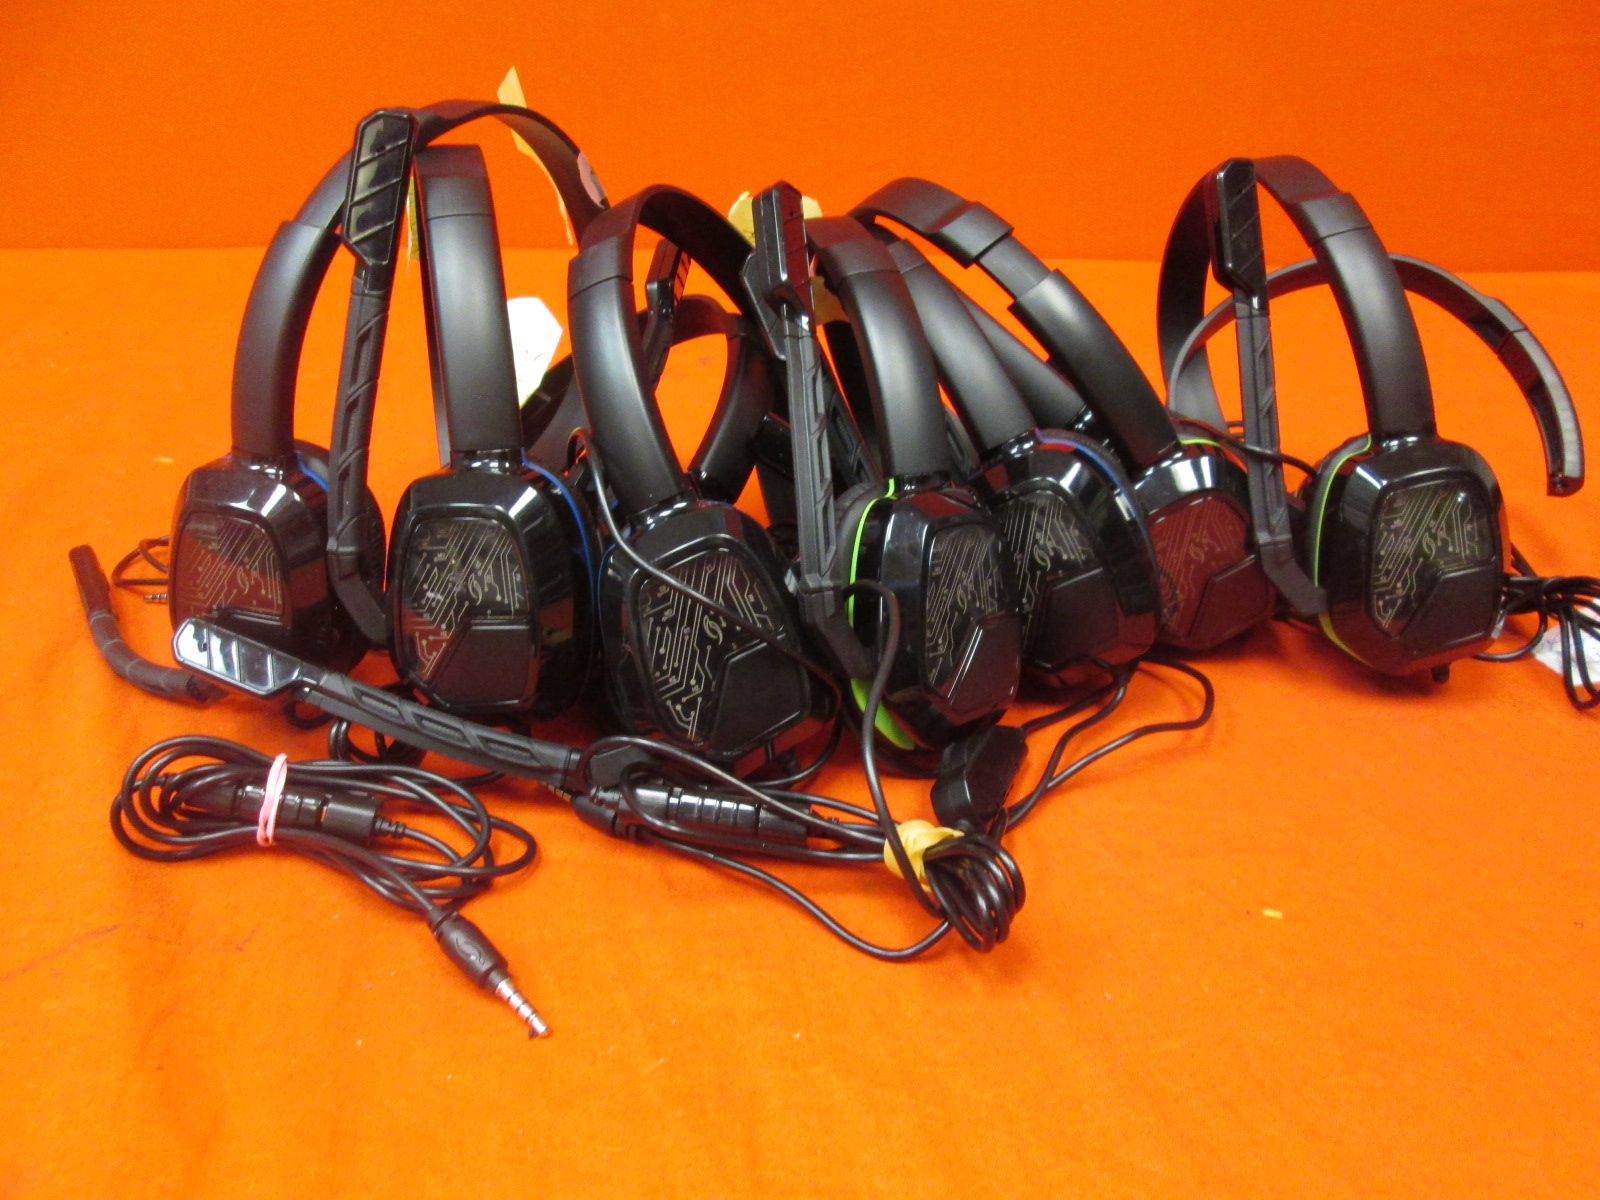 Broken Lot Of 10 Afterglow Gaming Headsets For PlayStation 4